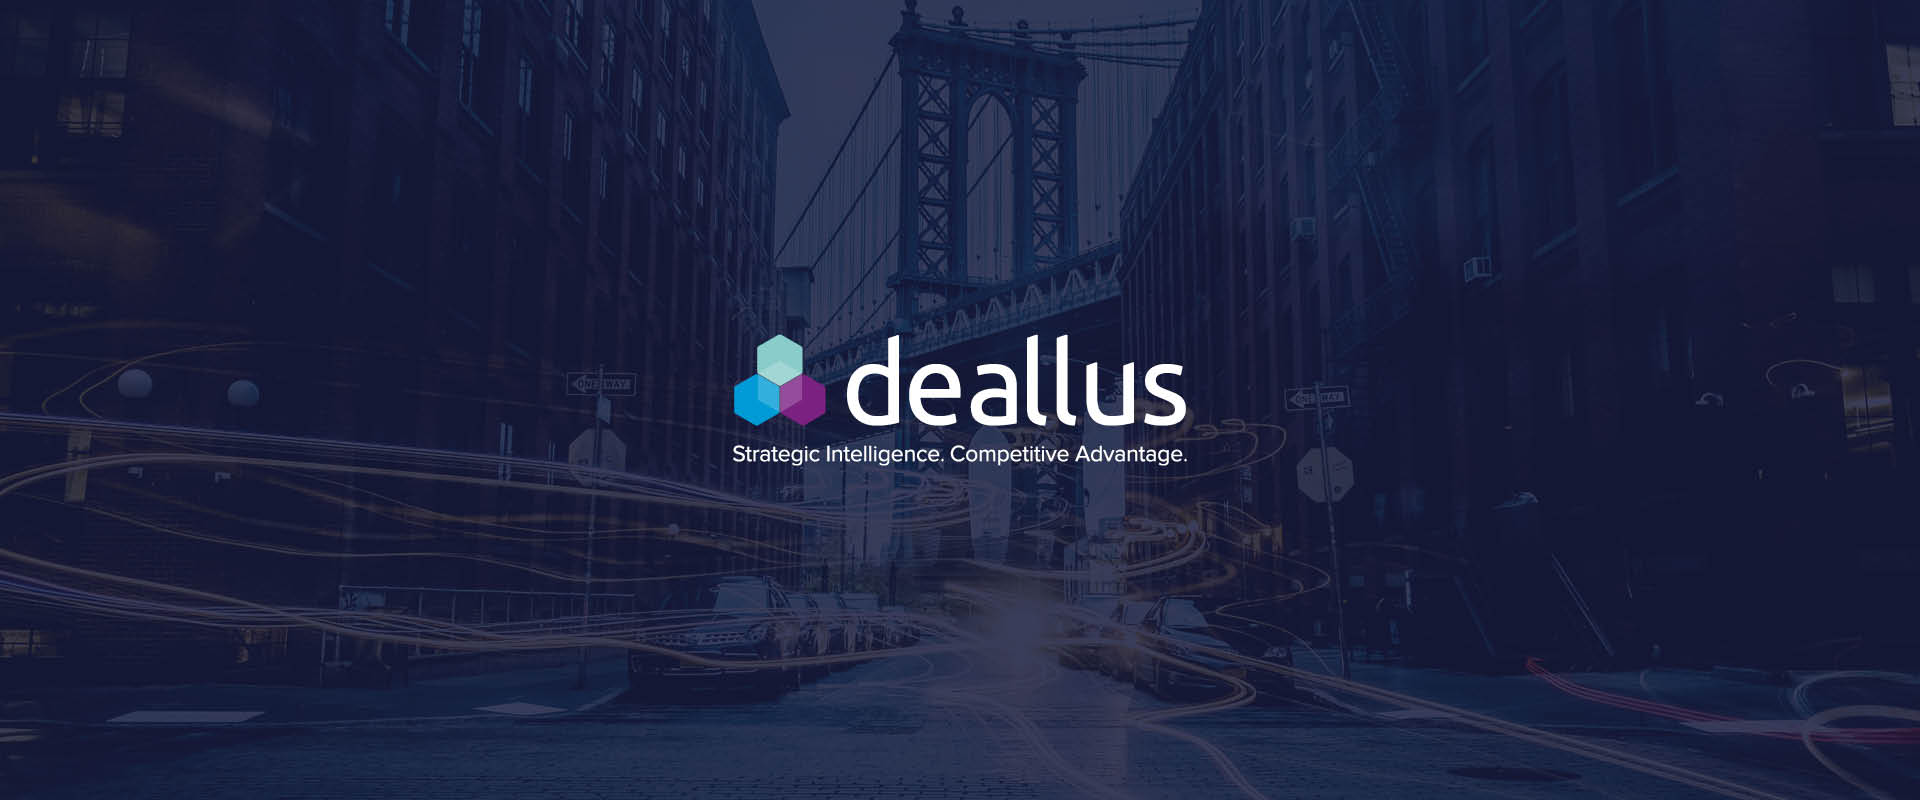 A refreshed new look for Deallus